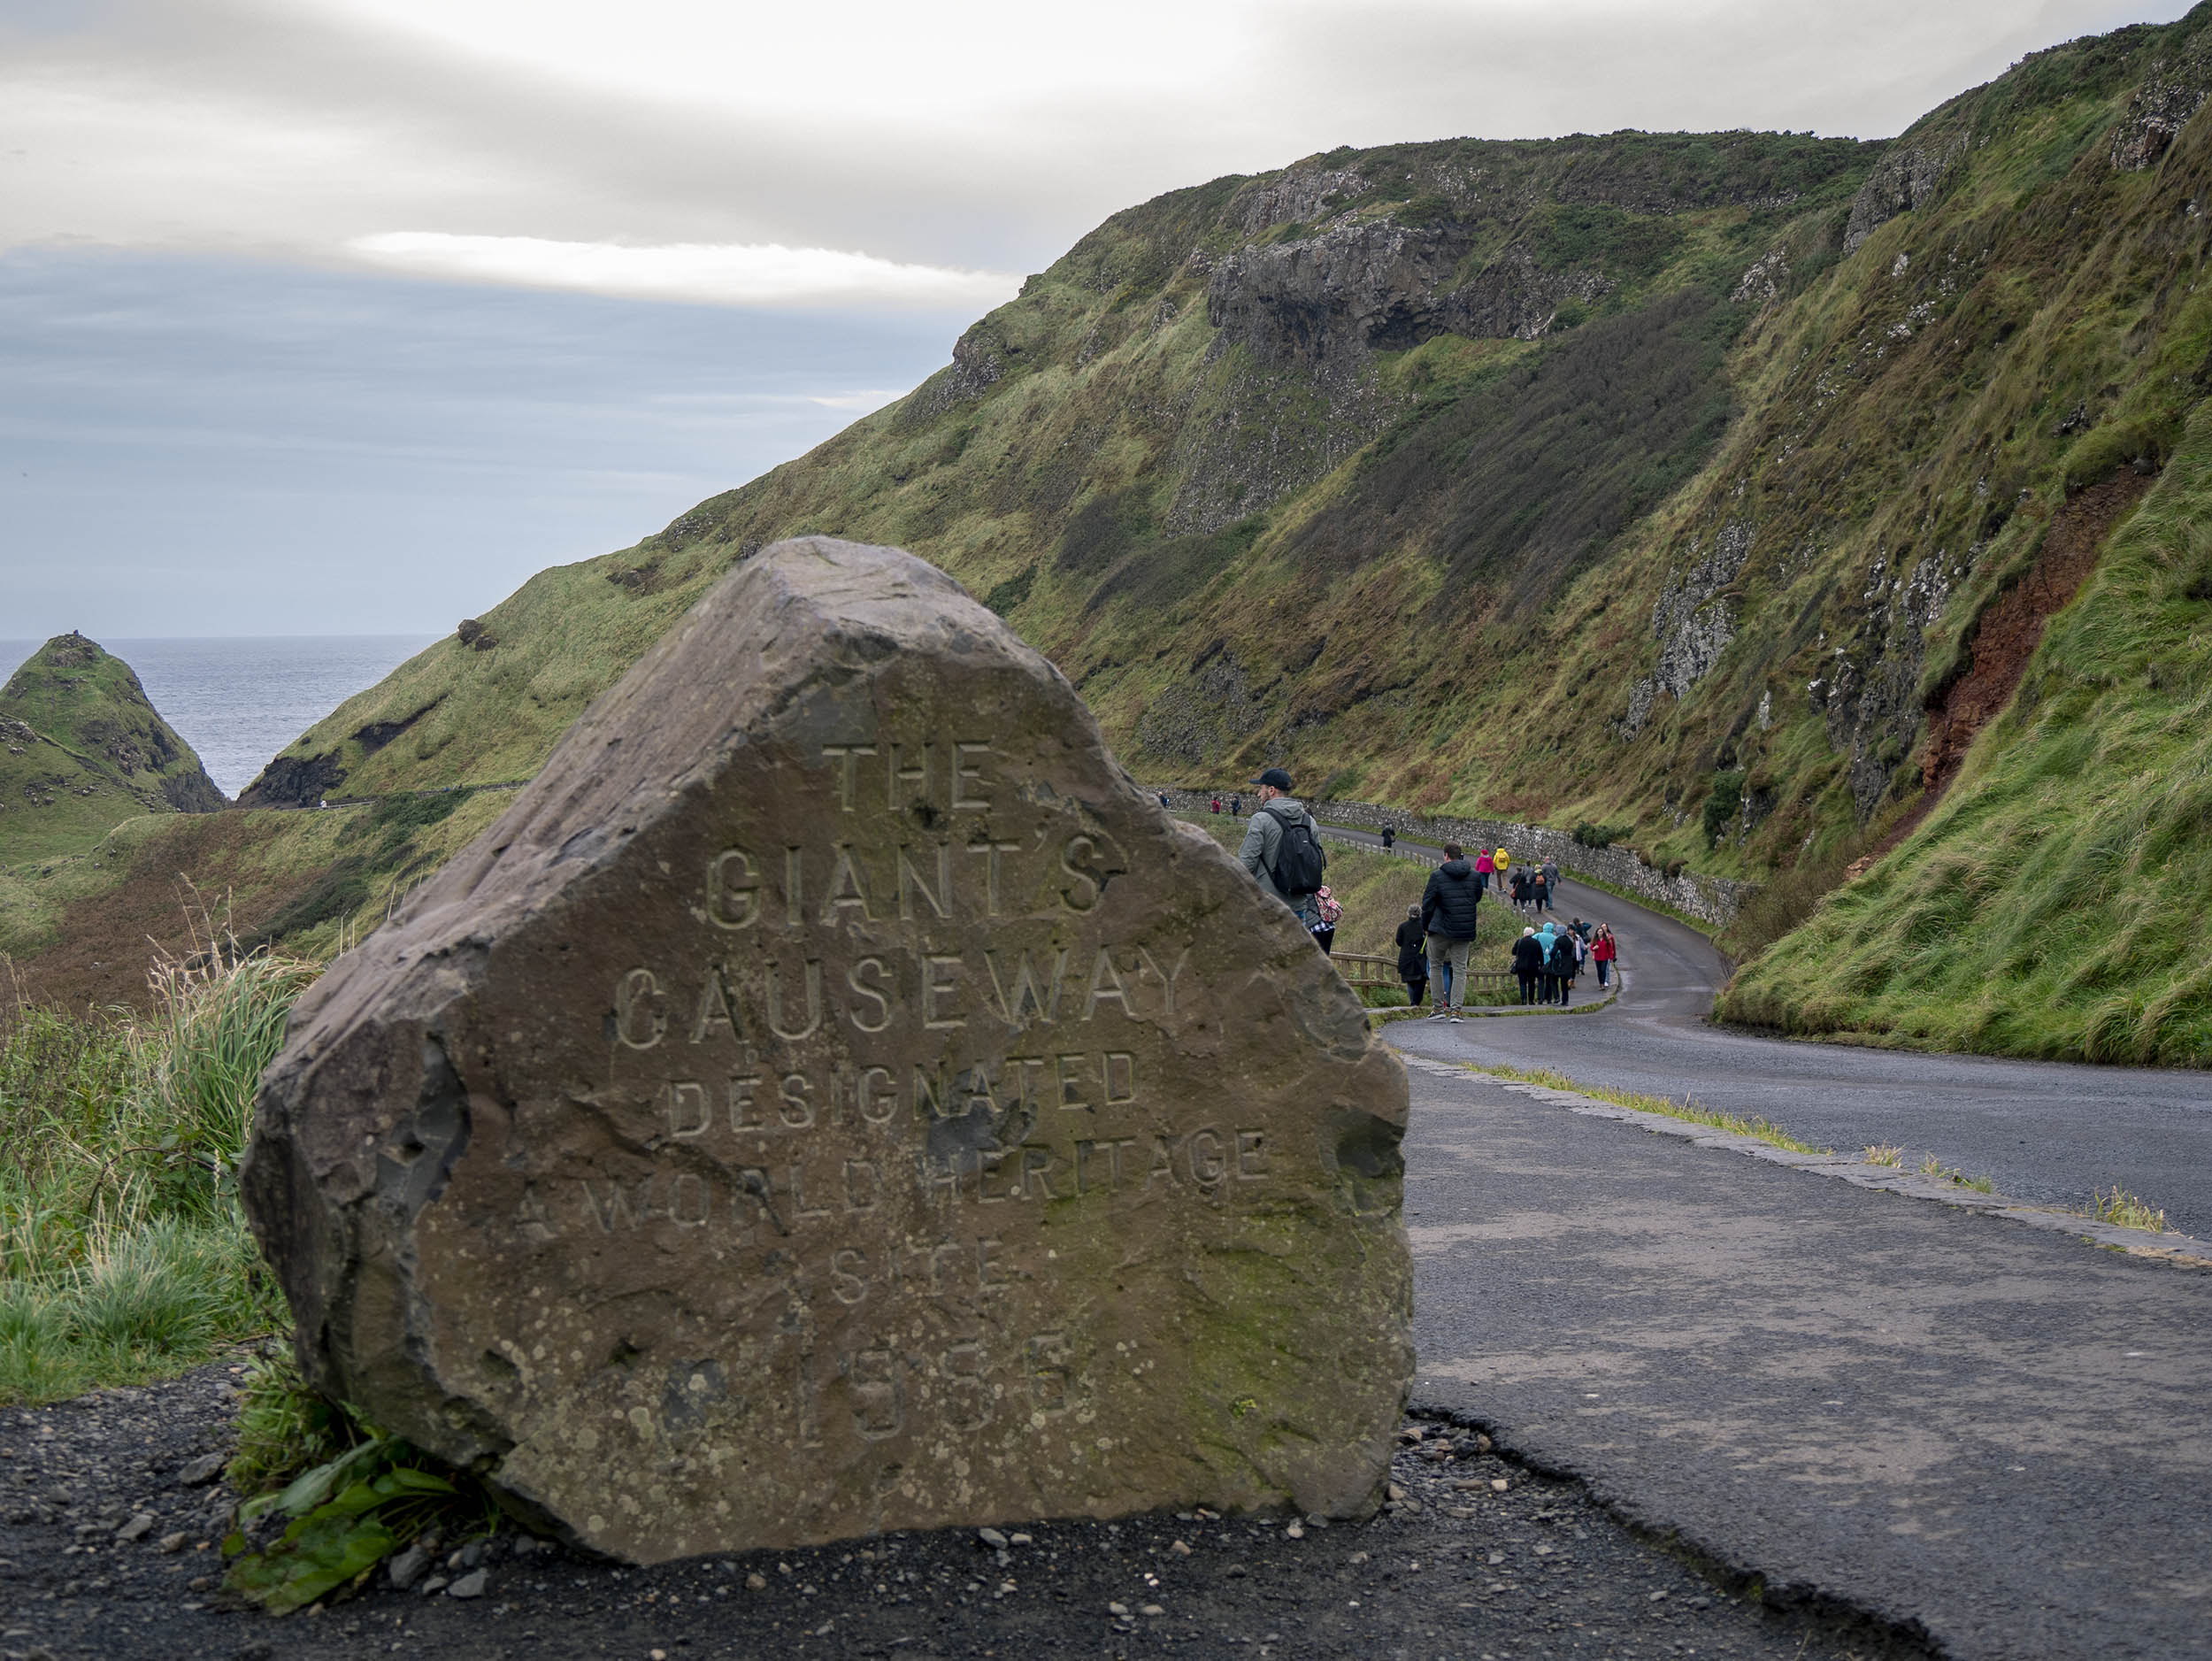 Self-Guided Giant's Causeway Tour